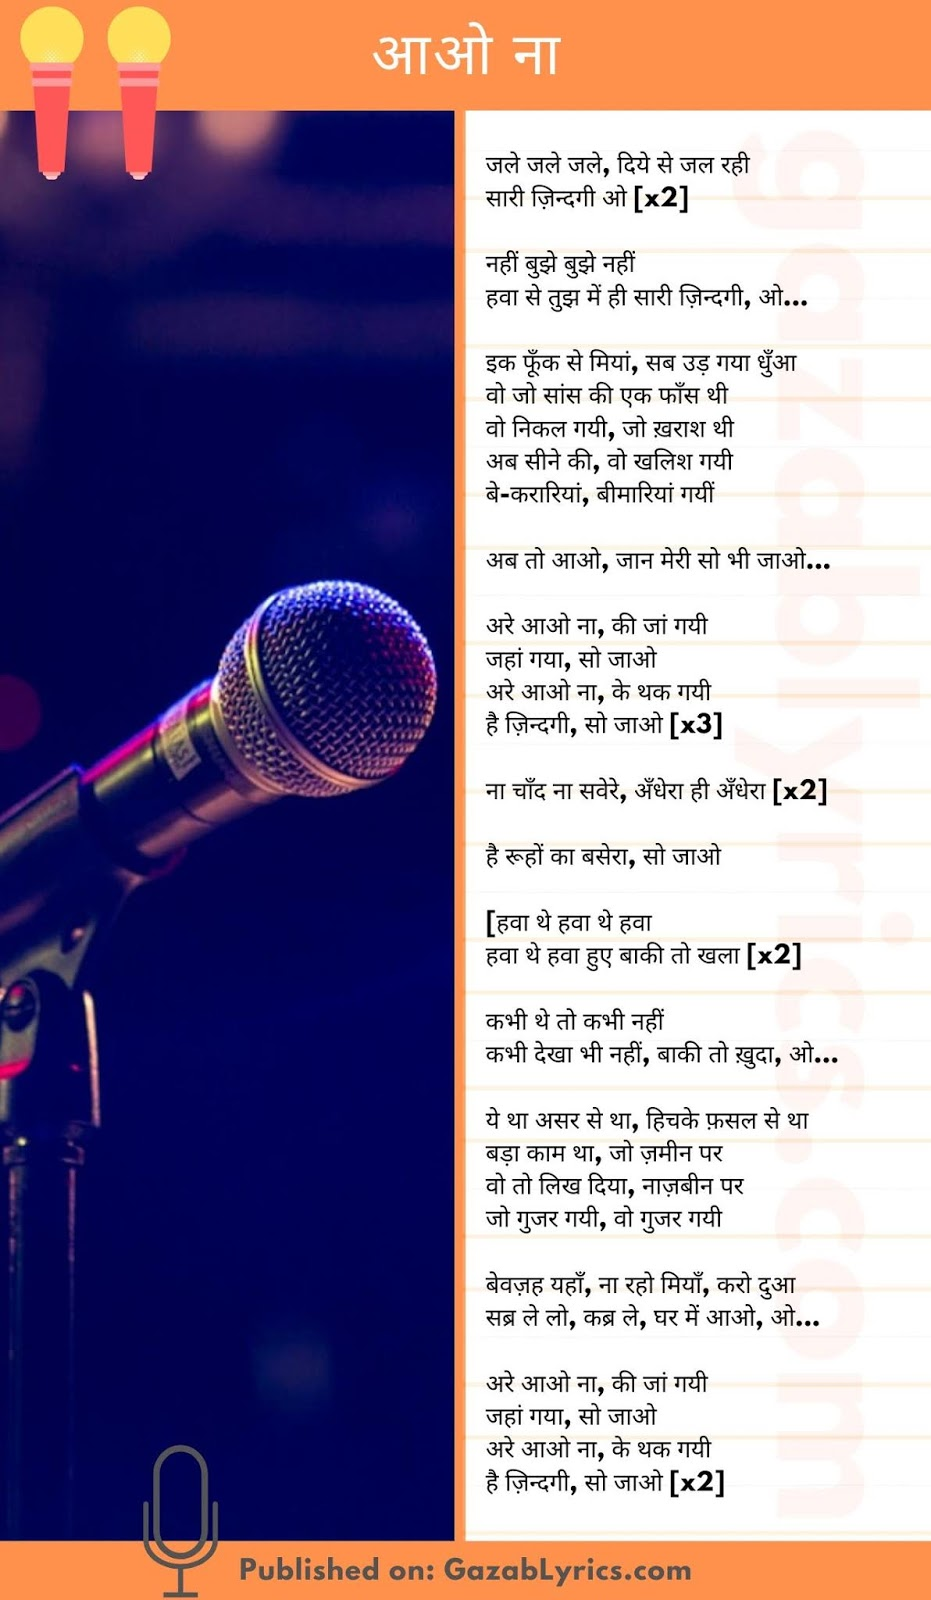 Aao Na song lyrics image